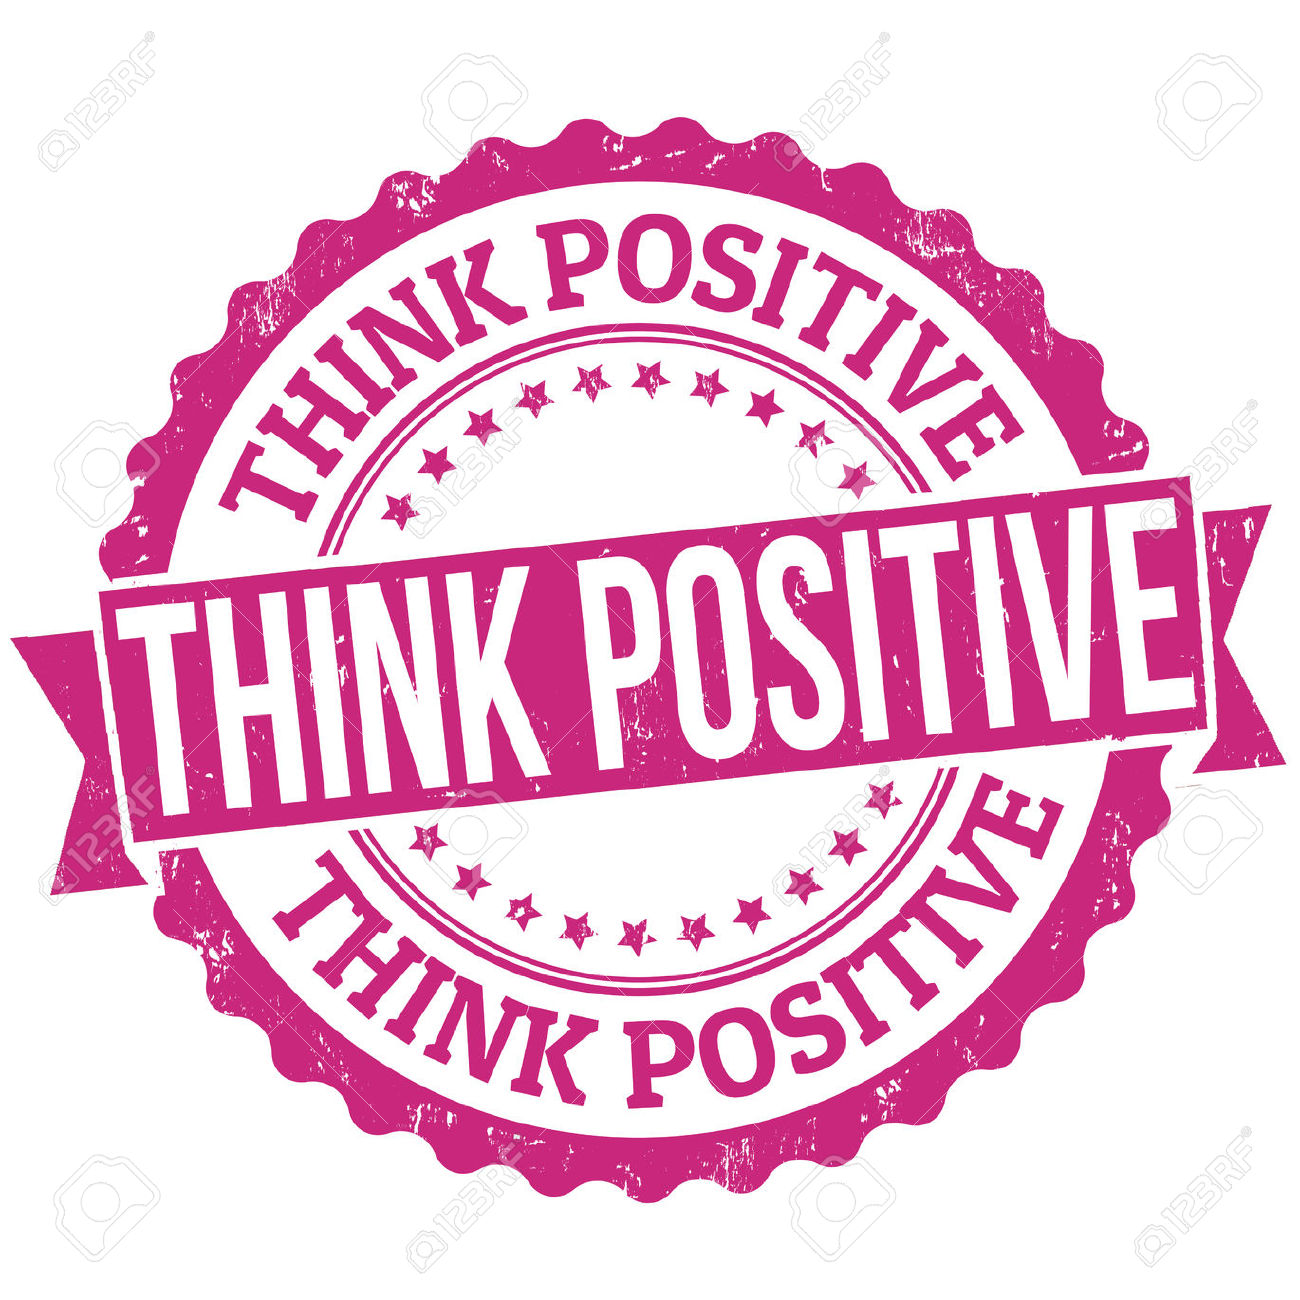 Positive Thoughts Clipart.